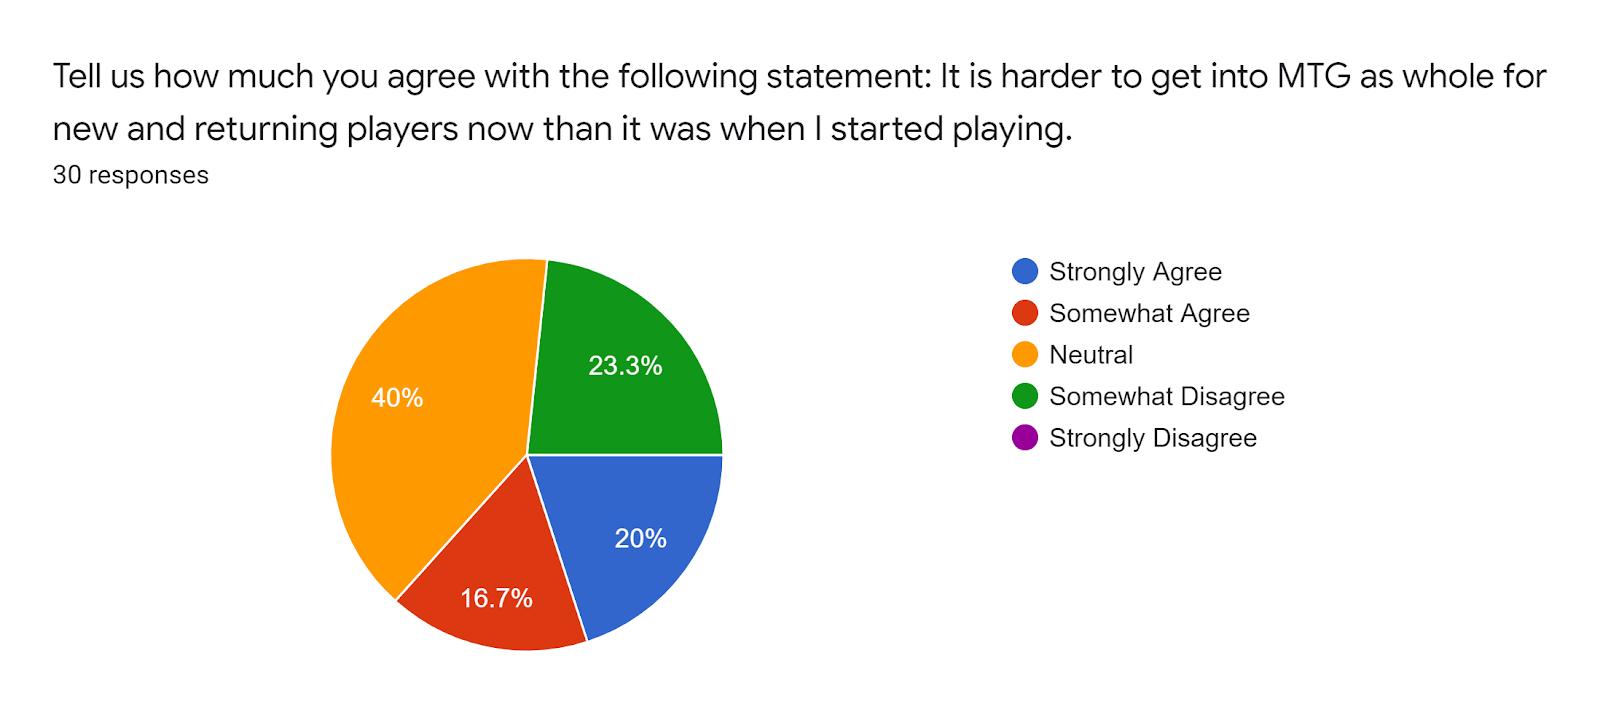 Forms response chart Question title Tell us how much you agree with the following statement It is harder to get into MTG as whole for new and returning players now than it was when I started playing Number of responses 30 responses